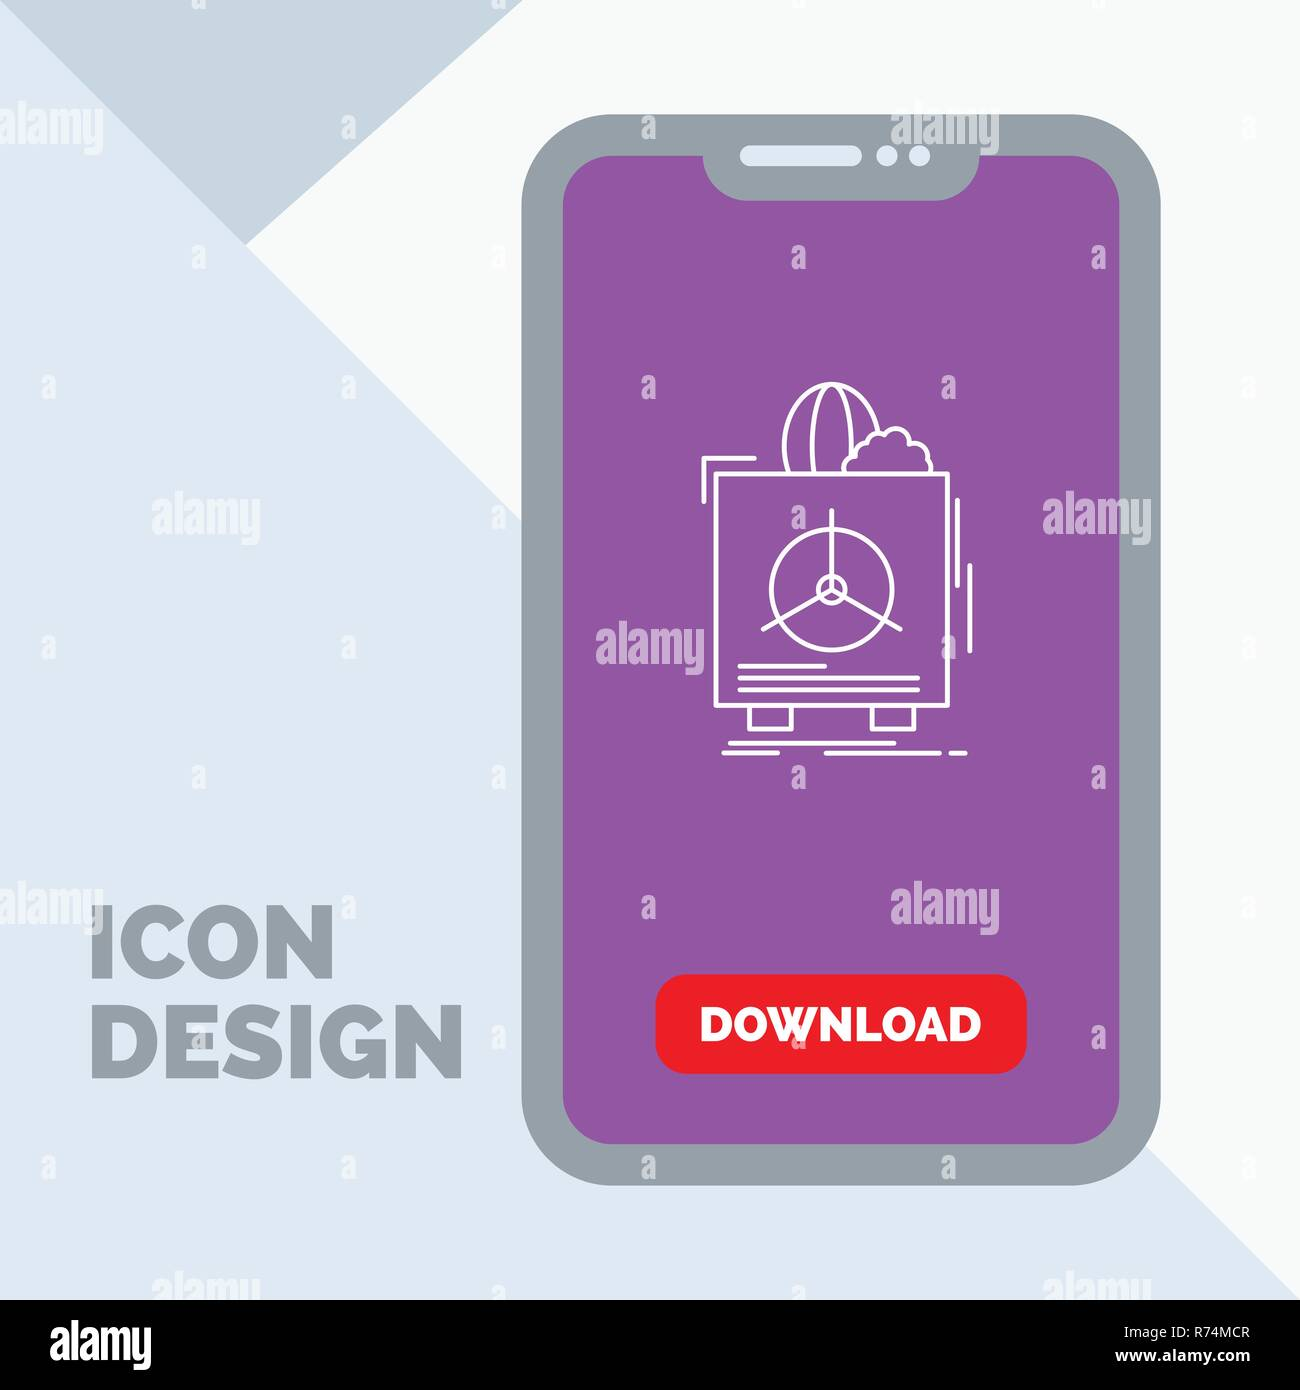 insurance, Fragile, product, warranty, health Line Icon in Mobile for Download Page - Stock Vector